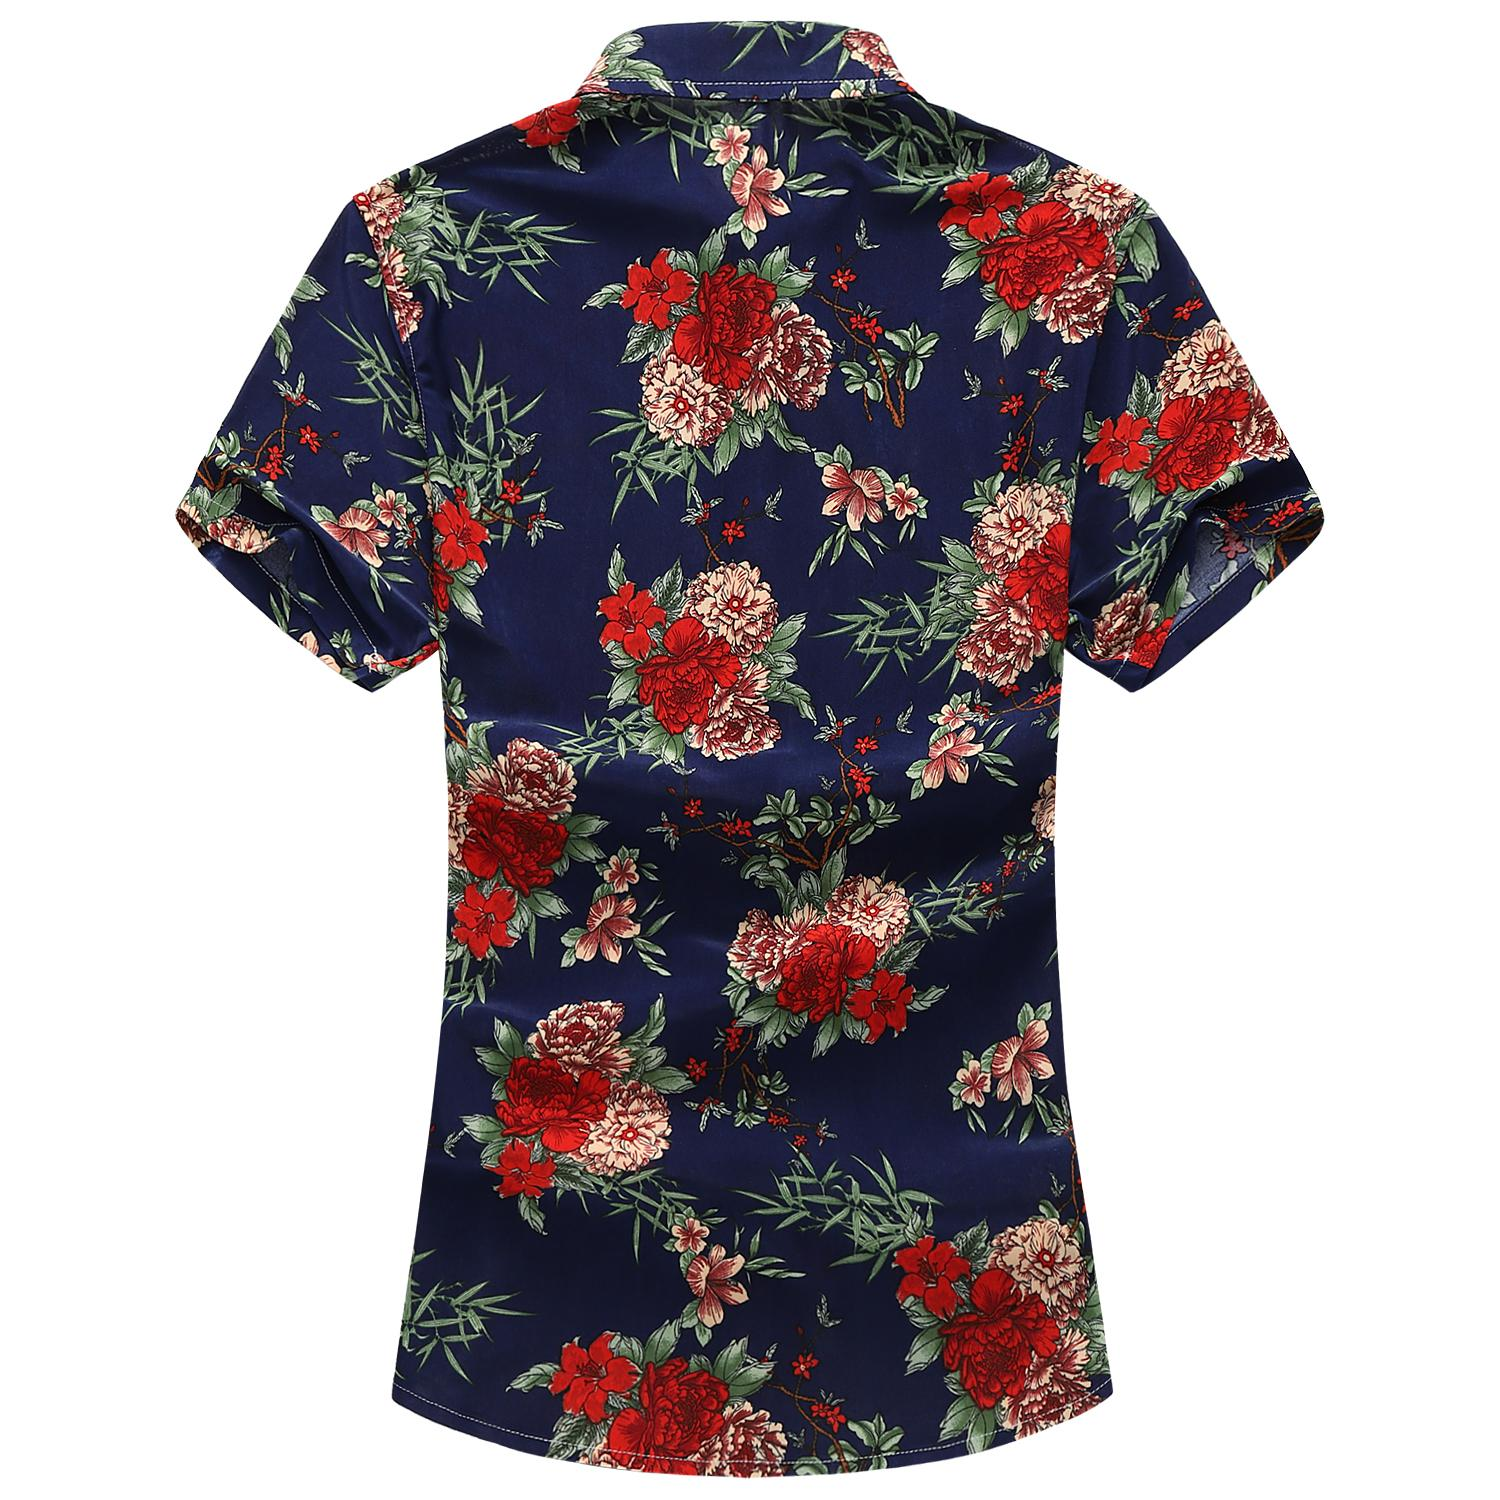 Men 39 s Shirts Floral Blouse Mens clothing Slim fit Summer Flower Shirt Men Leisure Beach style Fashion Camisa masculina in Casual Shirts from Men 39 s Clothing